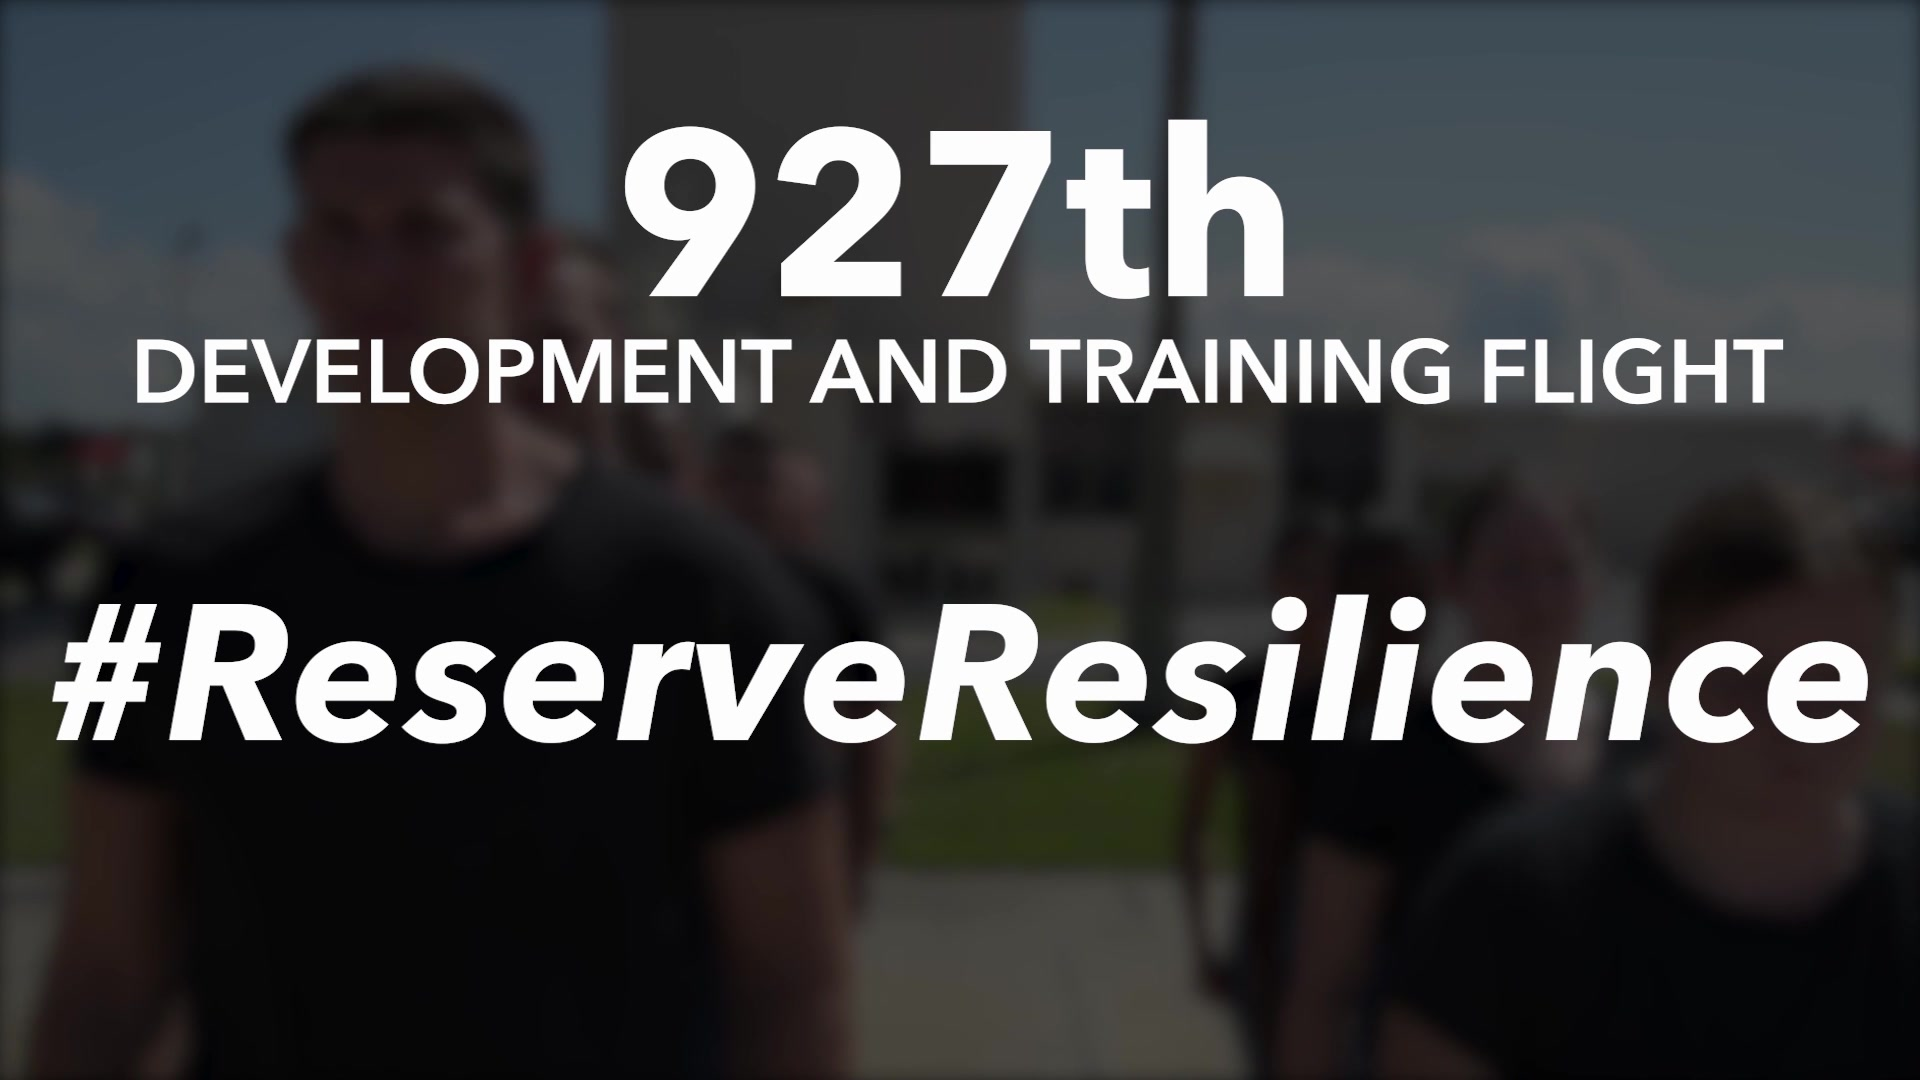 A look at how the 927th Development and Training Flight teaches trainees resilience before going off to Basic Military Training.